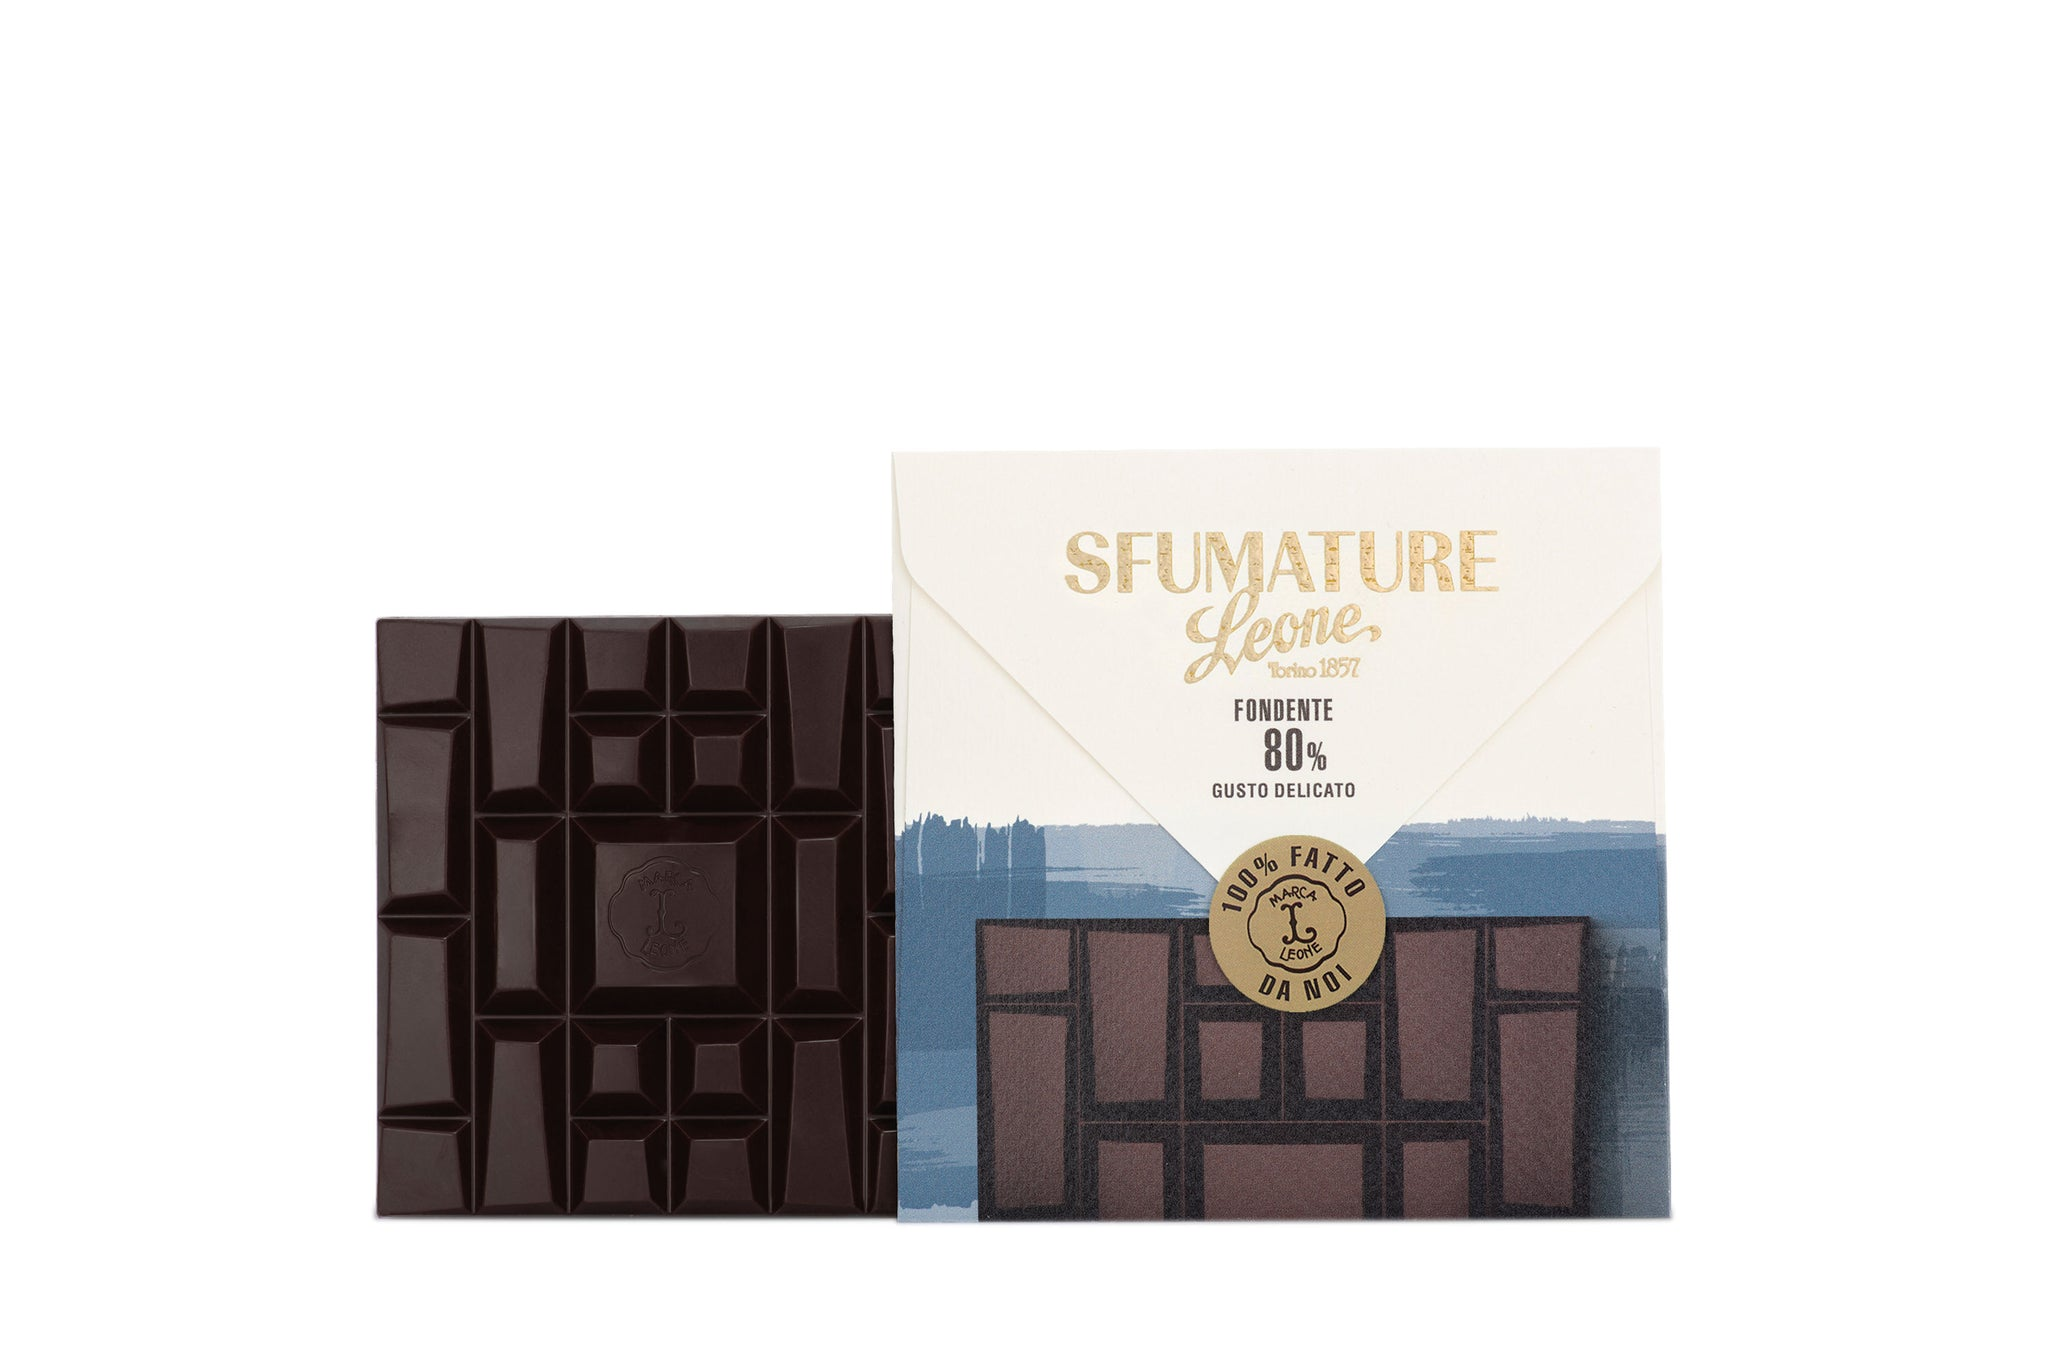 Pastiglie Leone Sfumature 80% Bean to Bar Dark Chocolate Delicate 75g